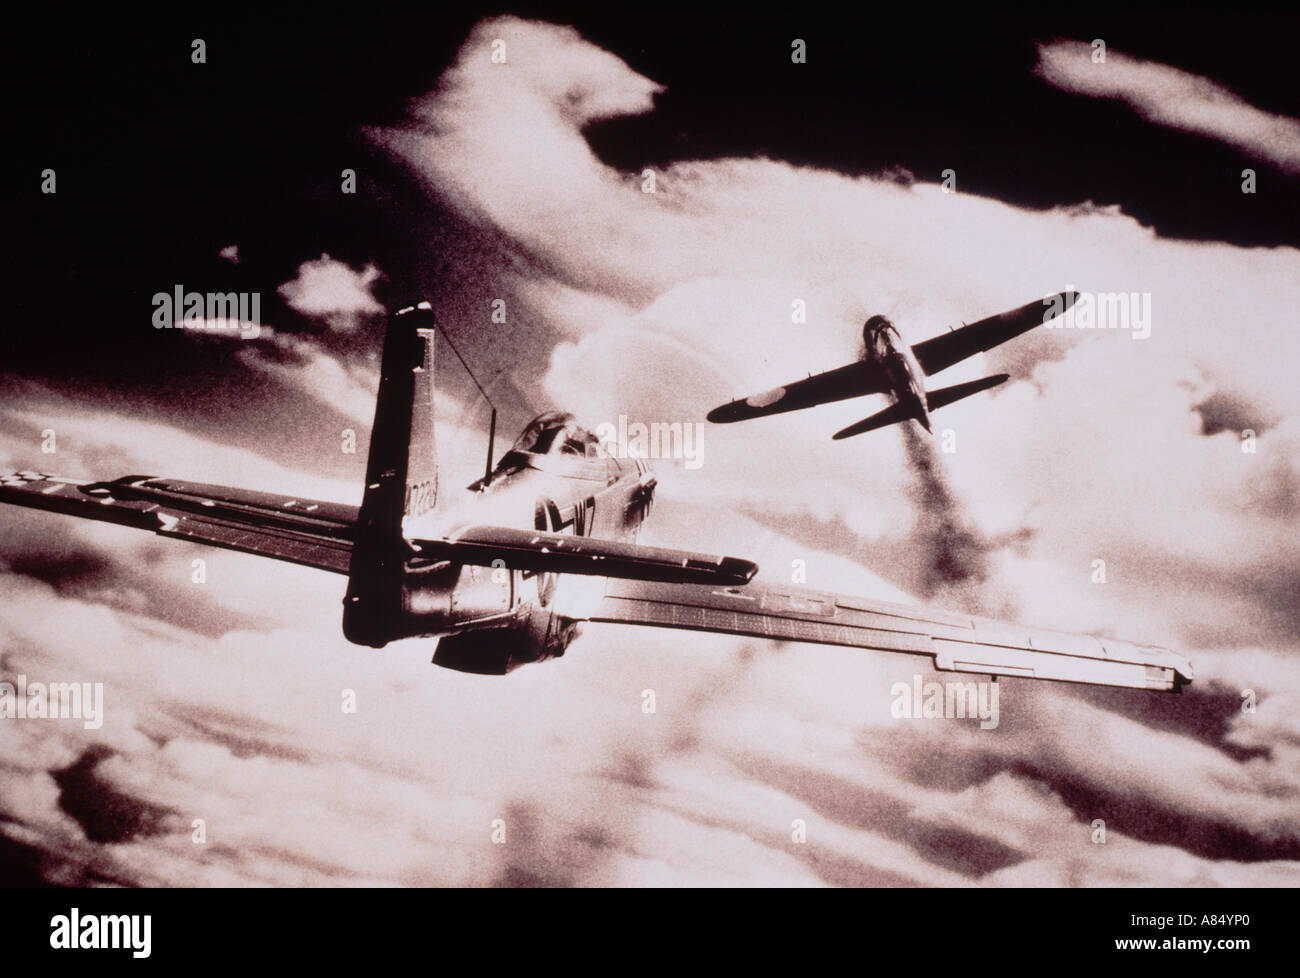 World War 2 air combat. United States of America v Japan. Fighter aircraft. - Stock Image